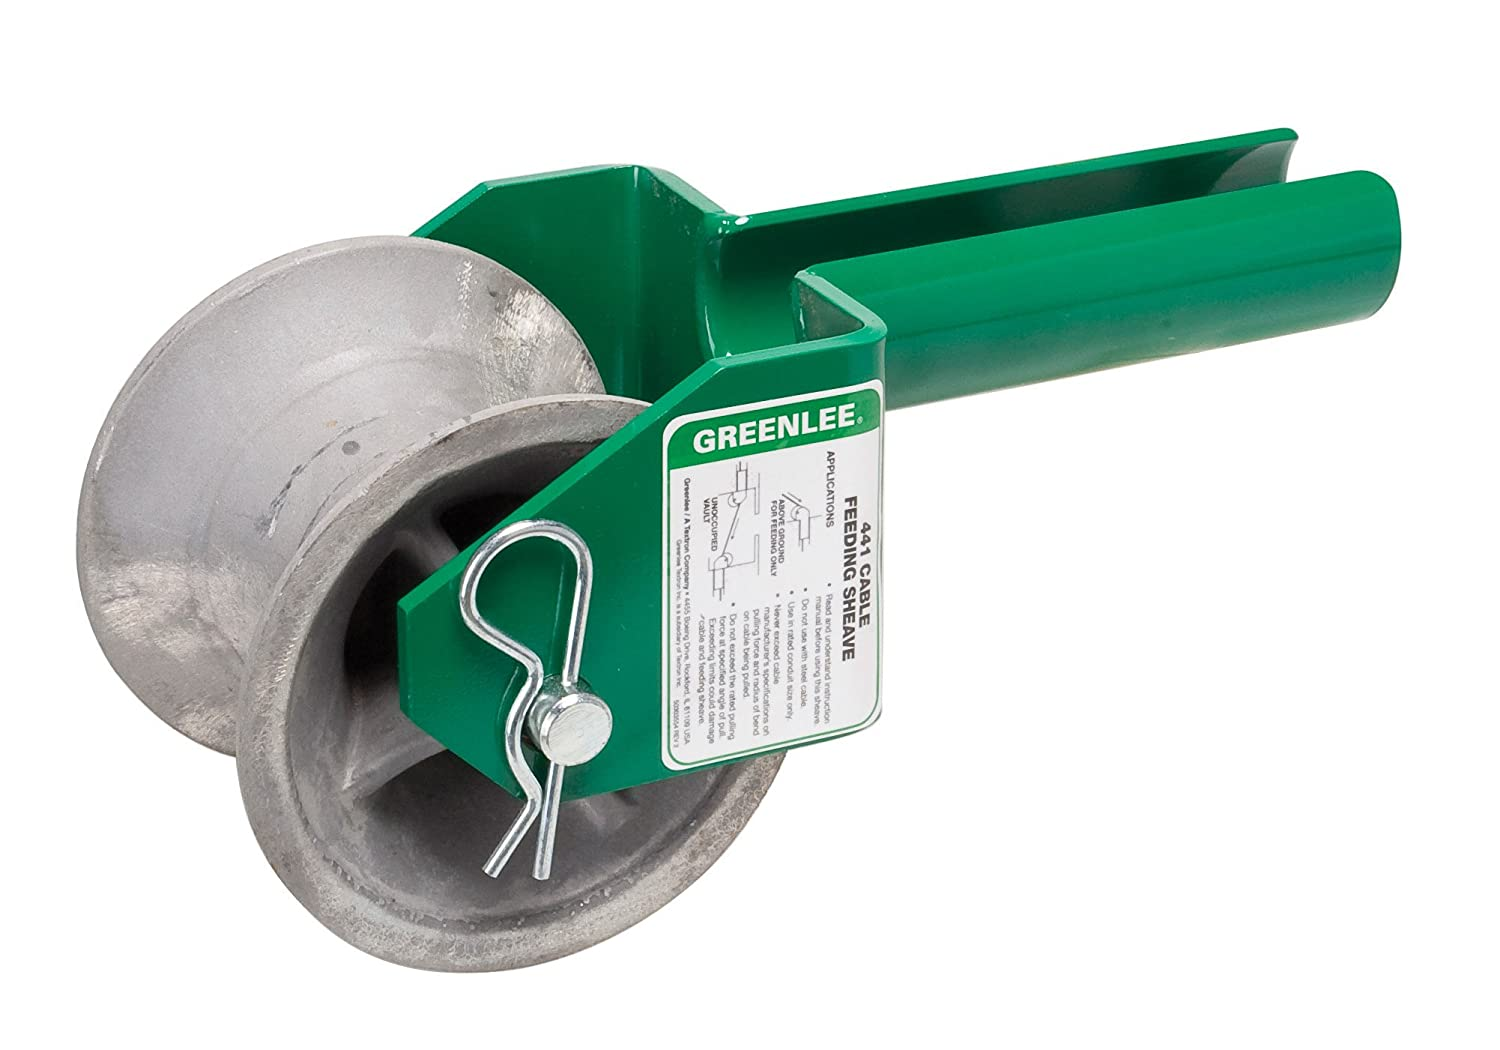 Greenlee 441-4 Feeding Sheave for 4-Inch Conduit - Hand Tool ...